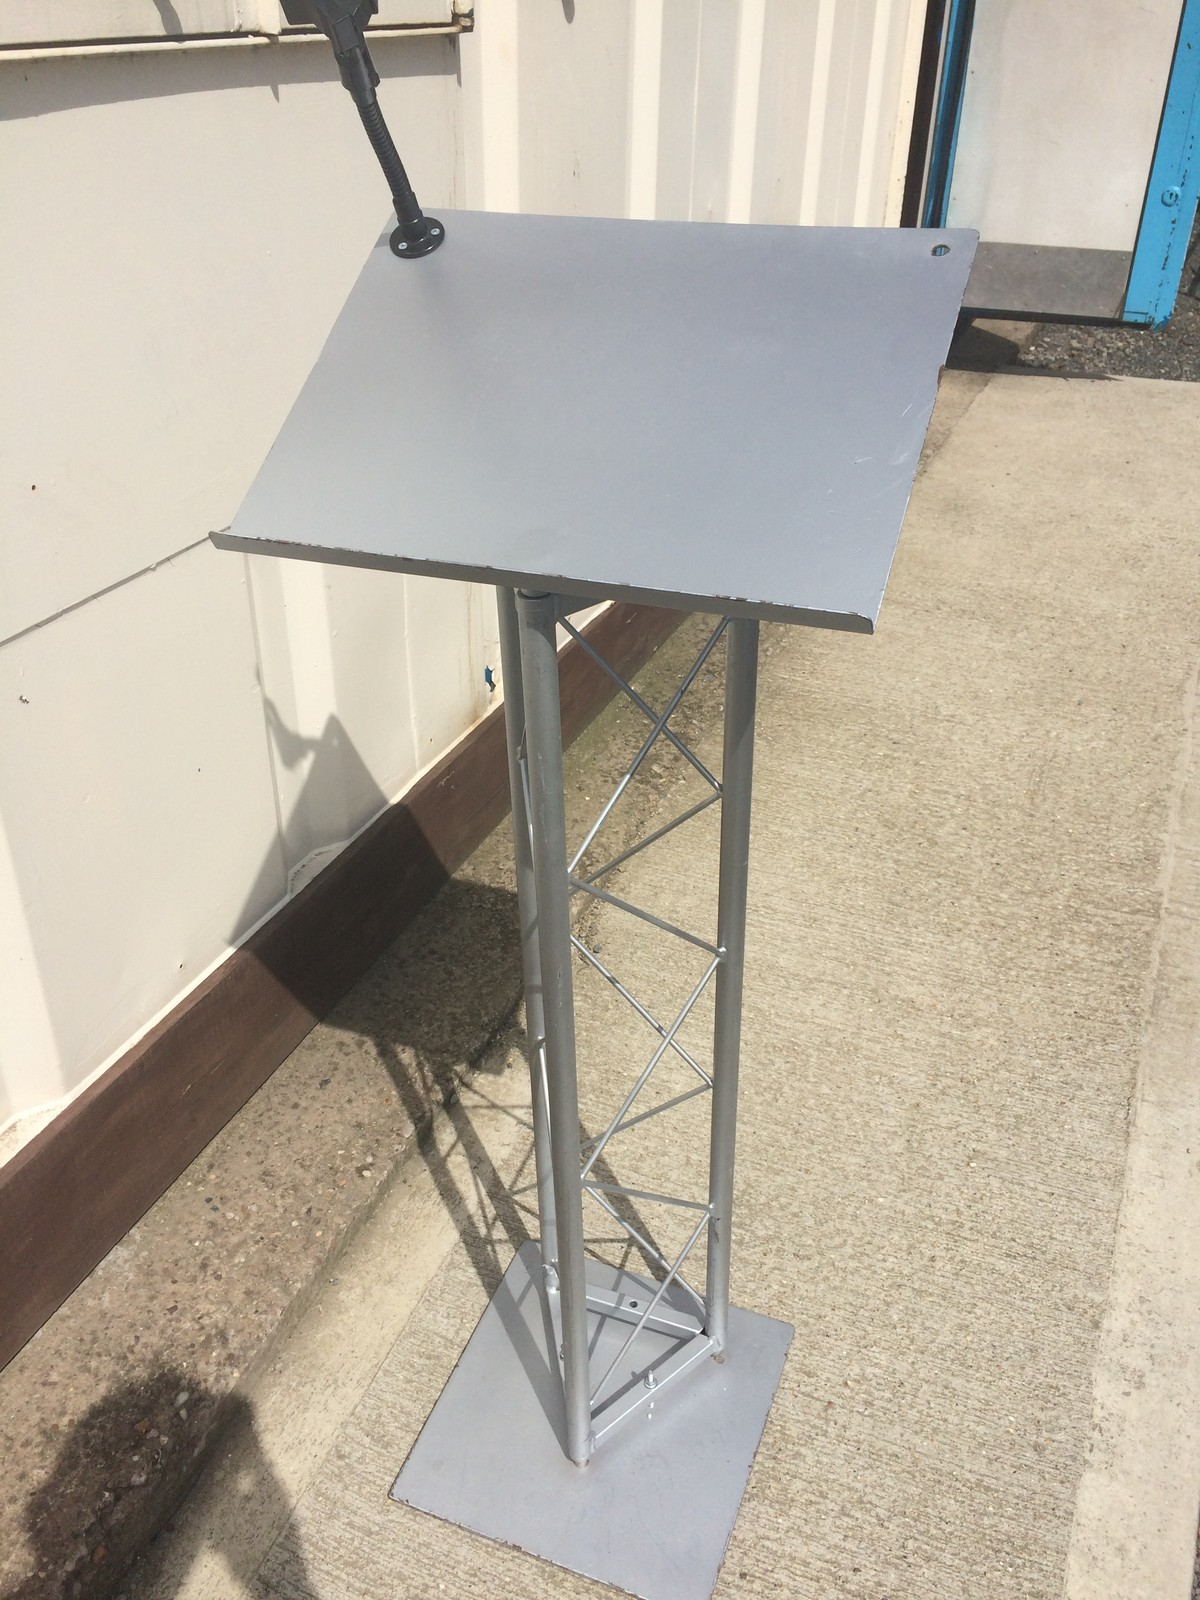 Secondhand Exhibition And Display Equipment Lecterns 2 Trilite Steel Lect